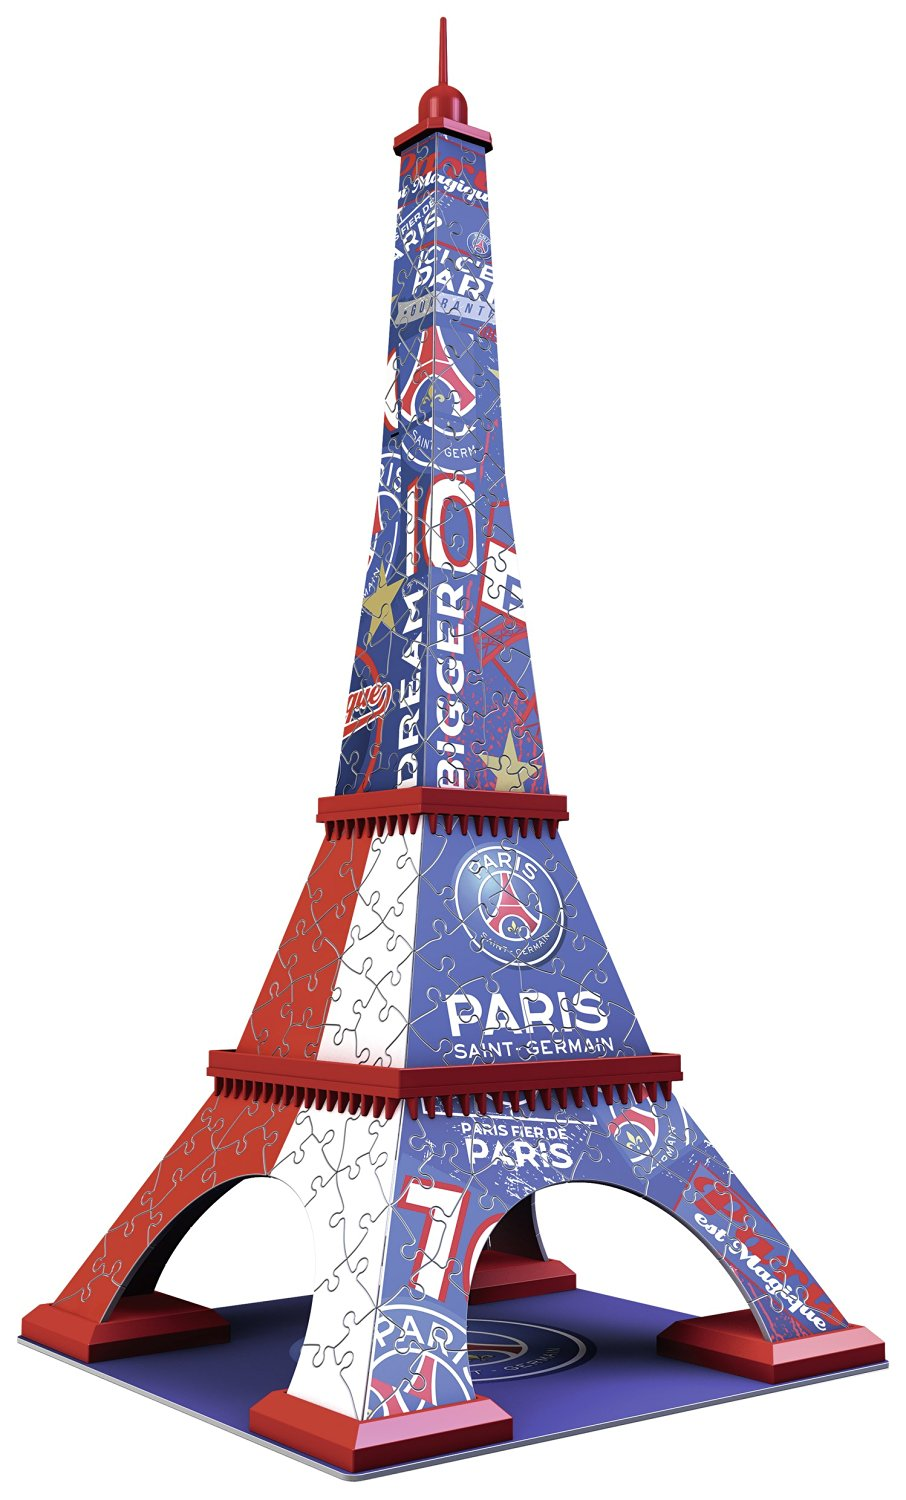 puzzle 3d tour eiffel psg ravensburger 12560 216 pi ces puzzles sports planet 39 puzzles. Black Bedroom Furniture Sets. Home Design Ideas